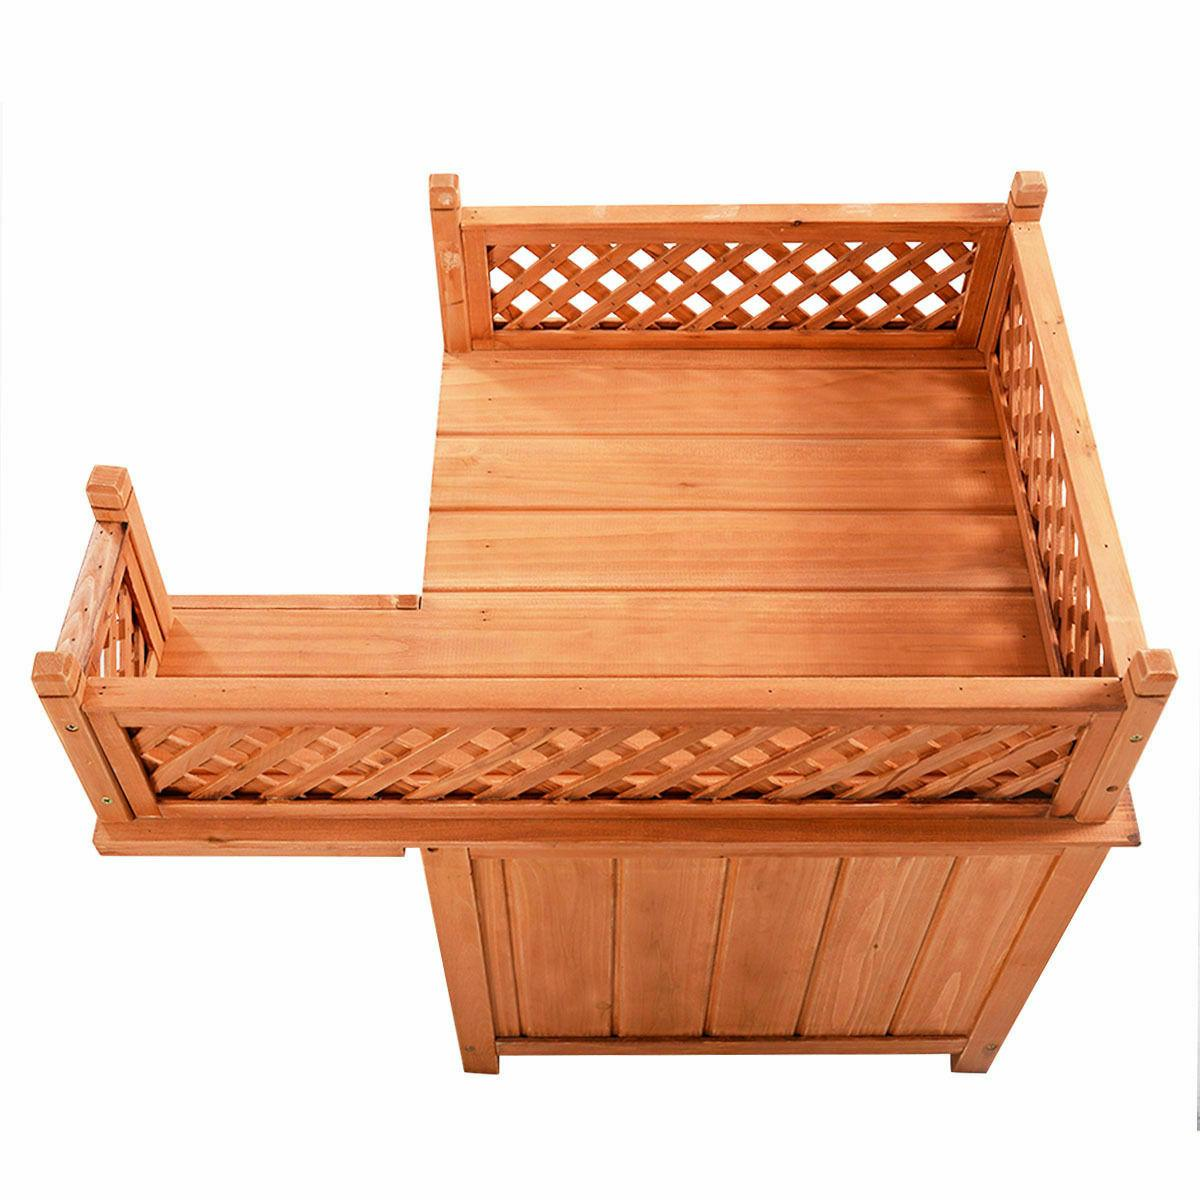 Wood Wooden Puppy Room & Outdoor Roof Bed Shelter